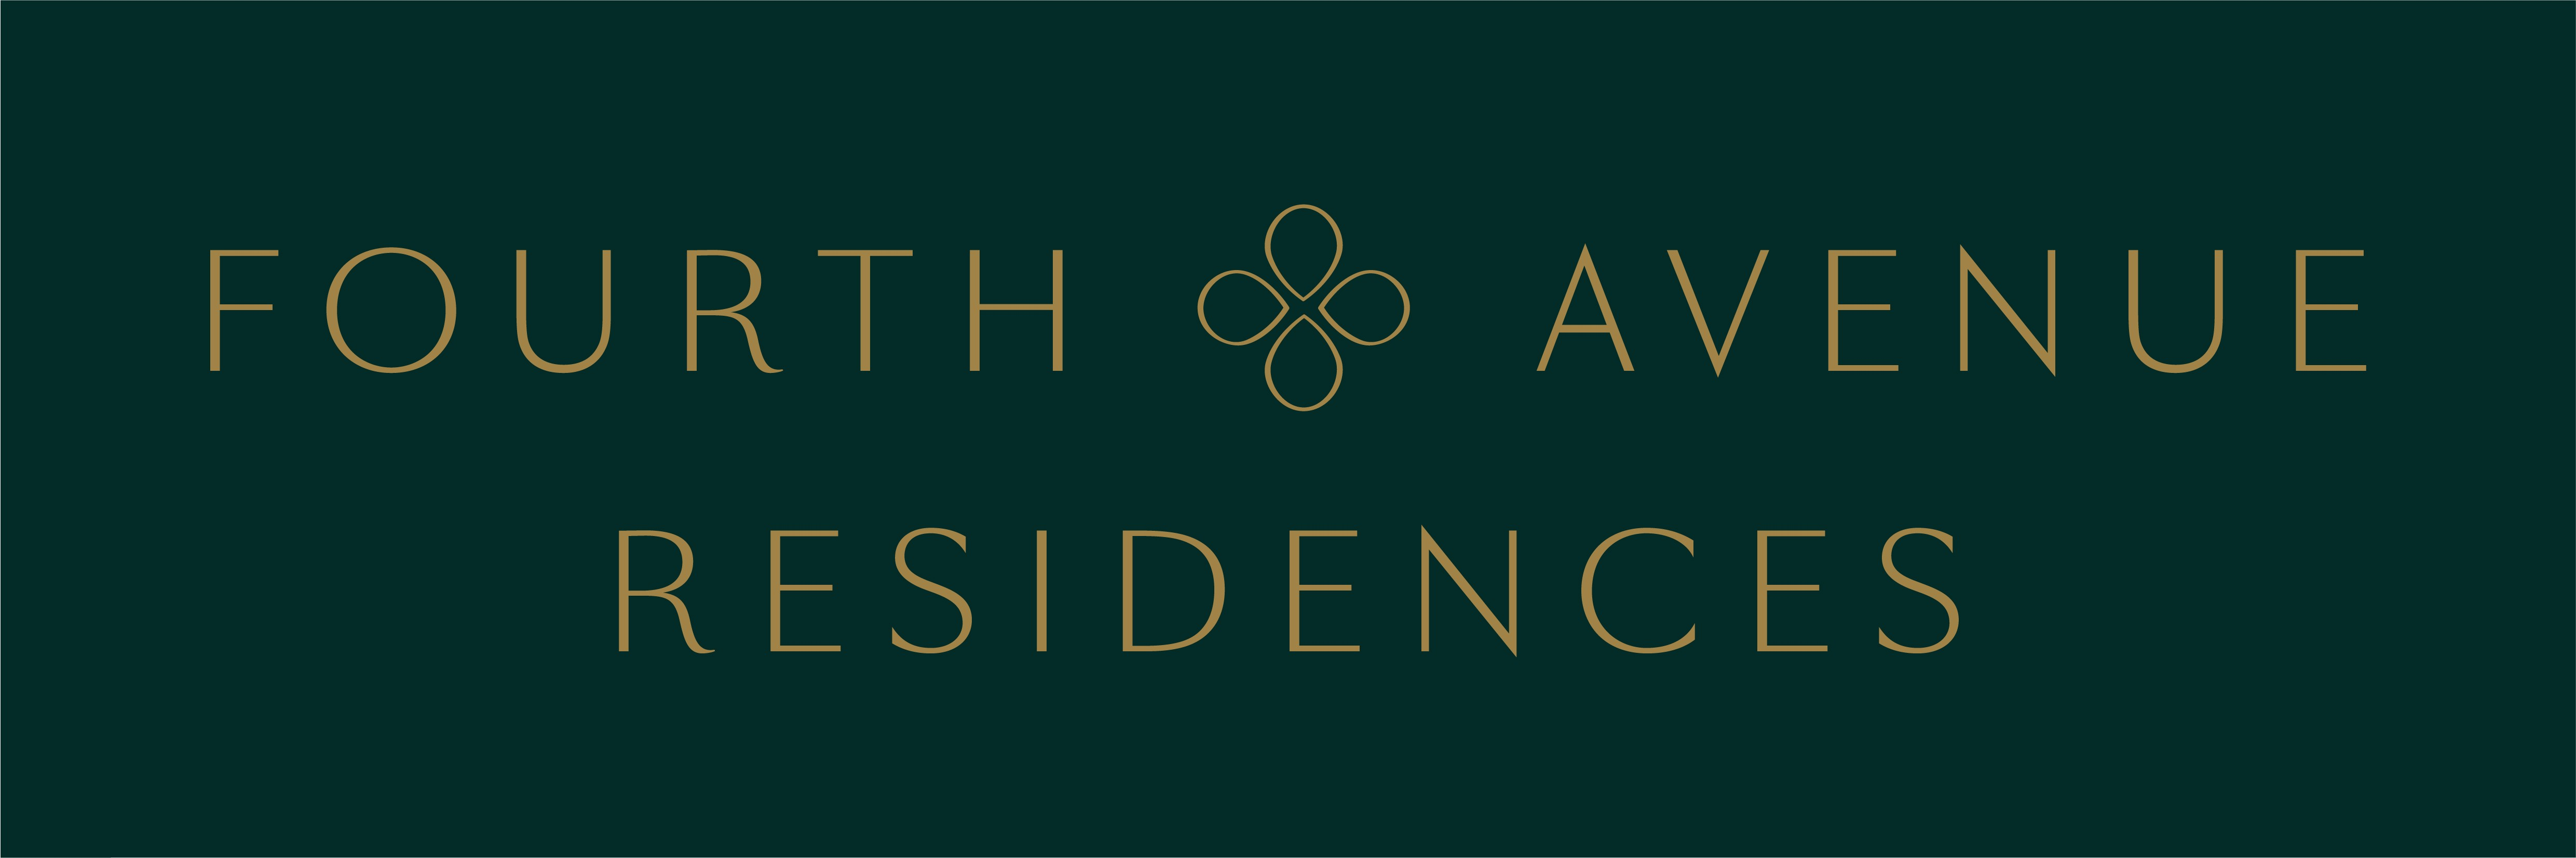 Fourth Avenue Residences  - Valleypoint Investments Pte Ltd (A wholly owned subsidiary of Allgreen Properties Ltd)